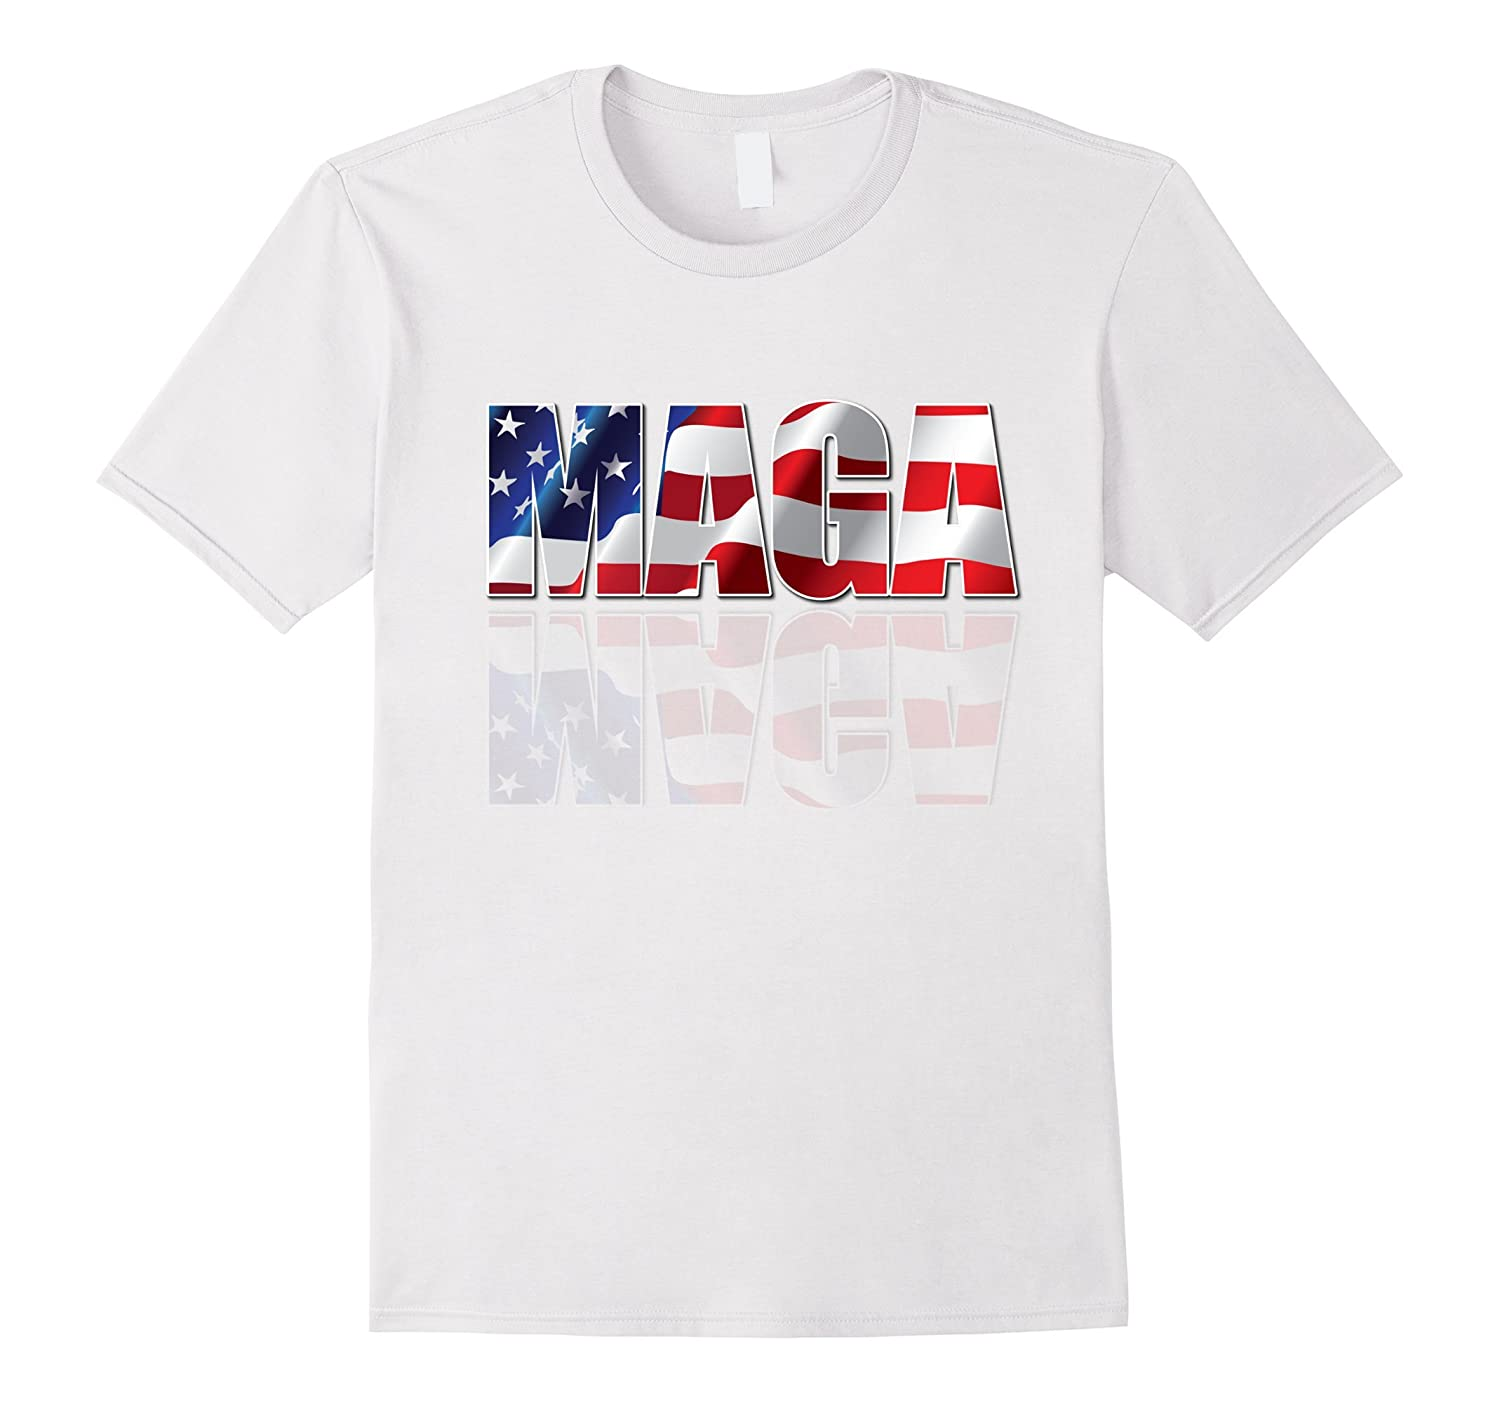 MAGA American Flag T-Shirt Trump Men Women Kids Graphic Tee-CD